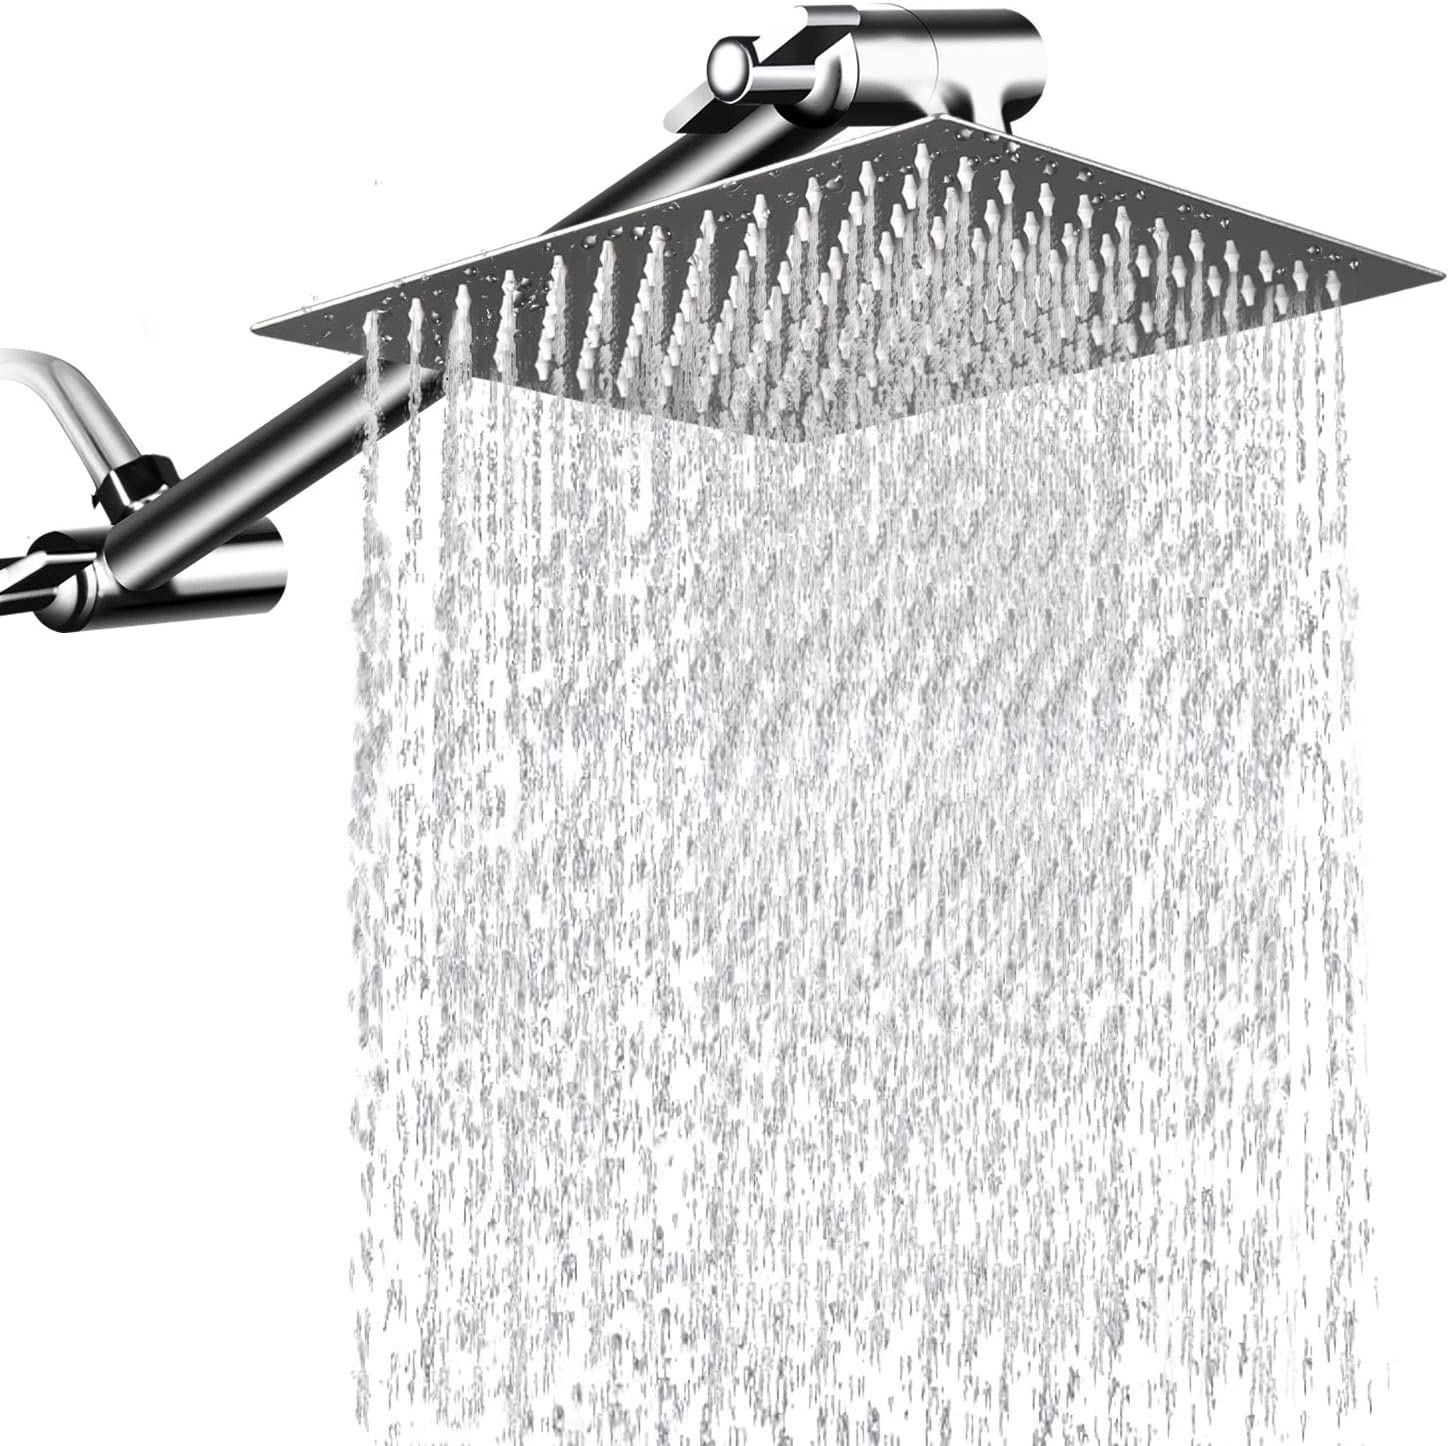 Review of MeSun 12 Inch High Pressure Showerhead with 11 Inch Arm